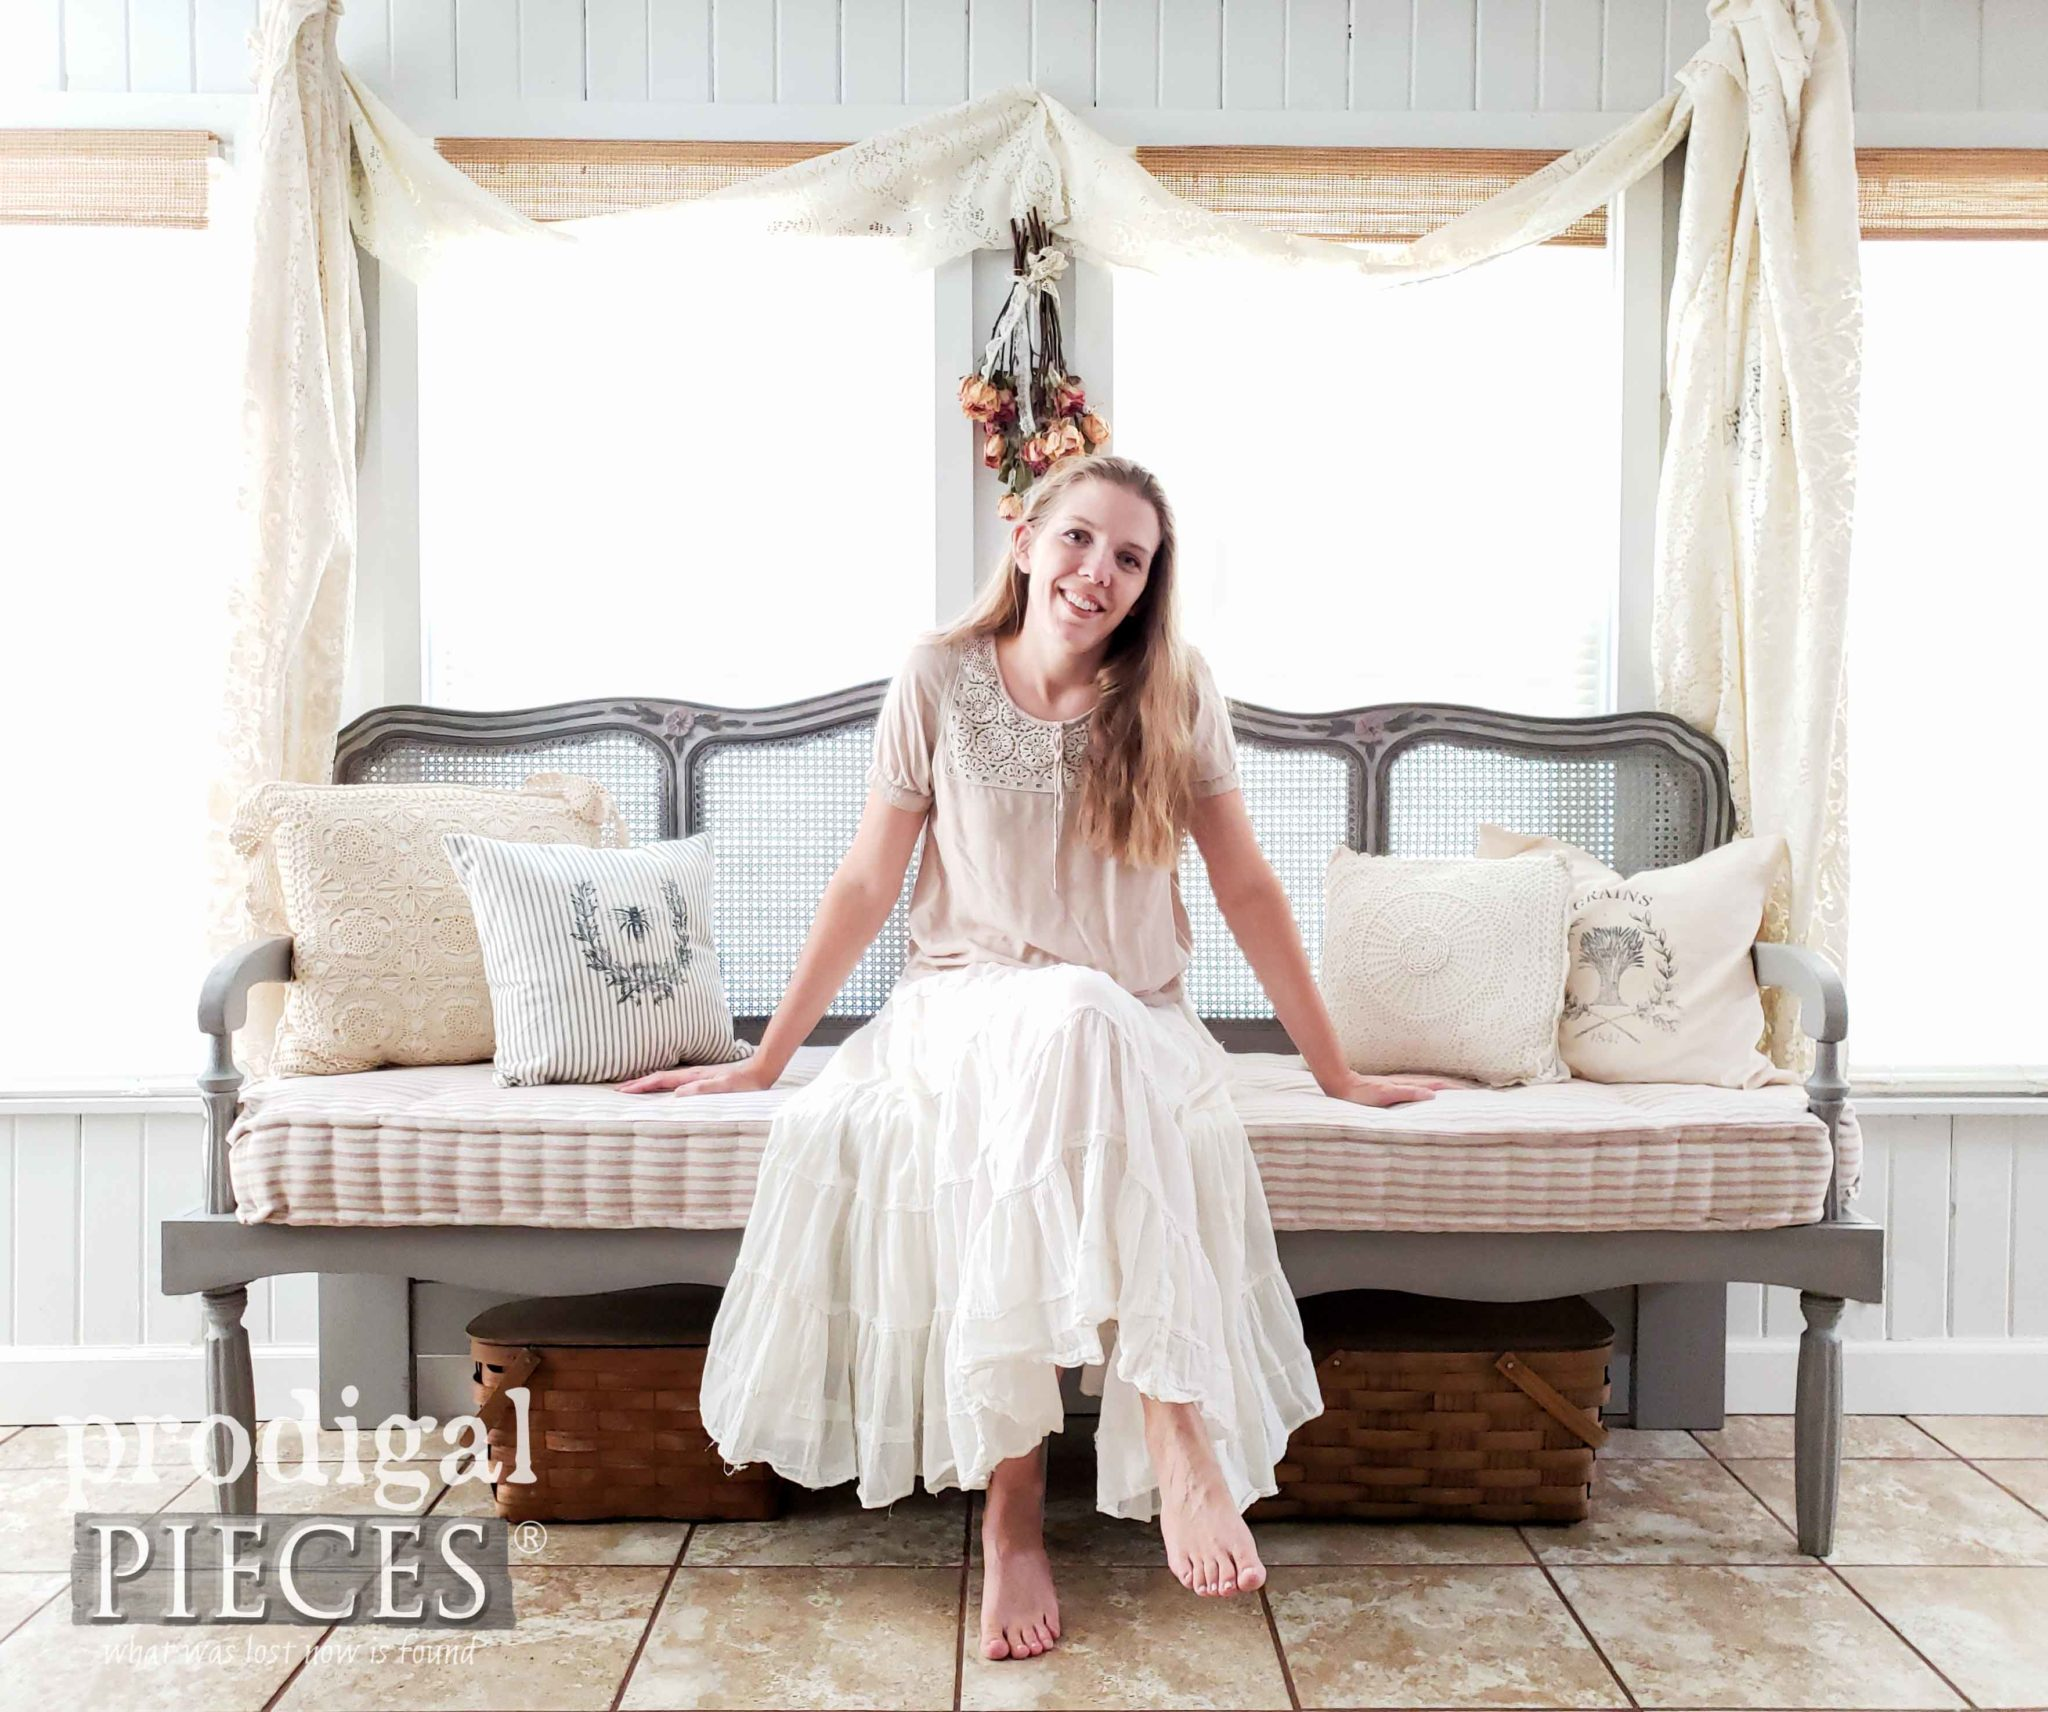 Larissa Haynes of Prodigal Pieces sitting on her custom made French Provincial Headboard bench with French Mattress | See the DIY details at prodigalpieces.com